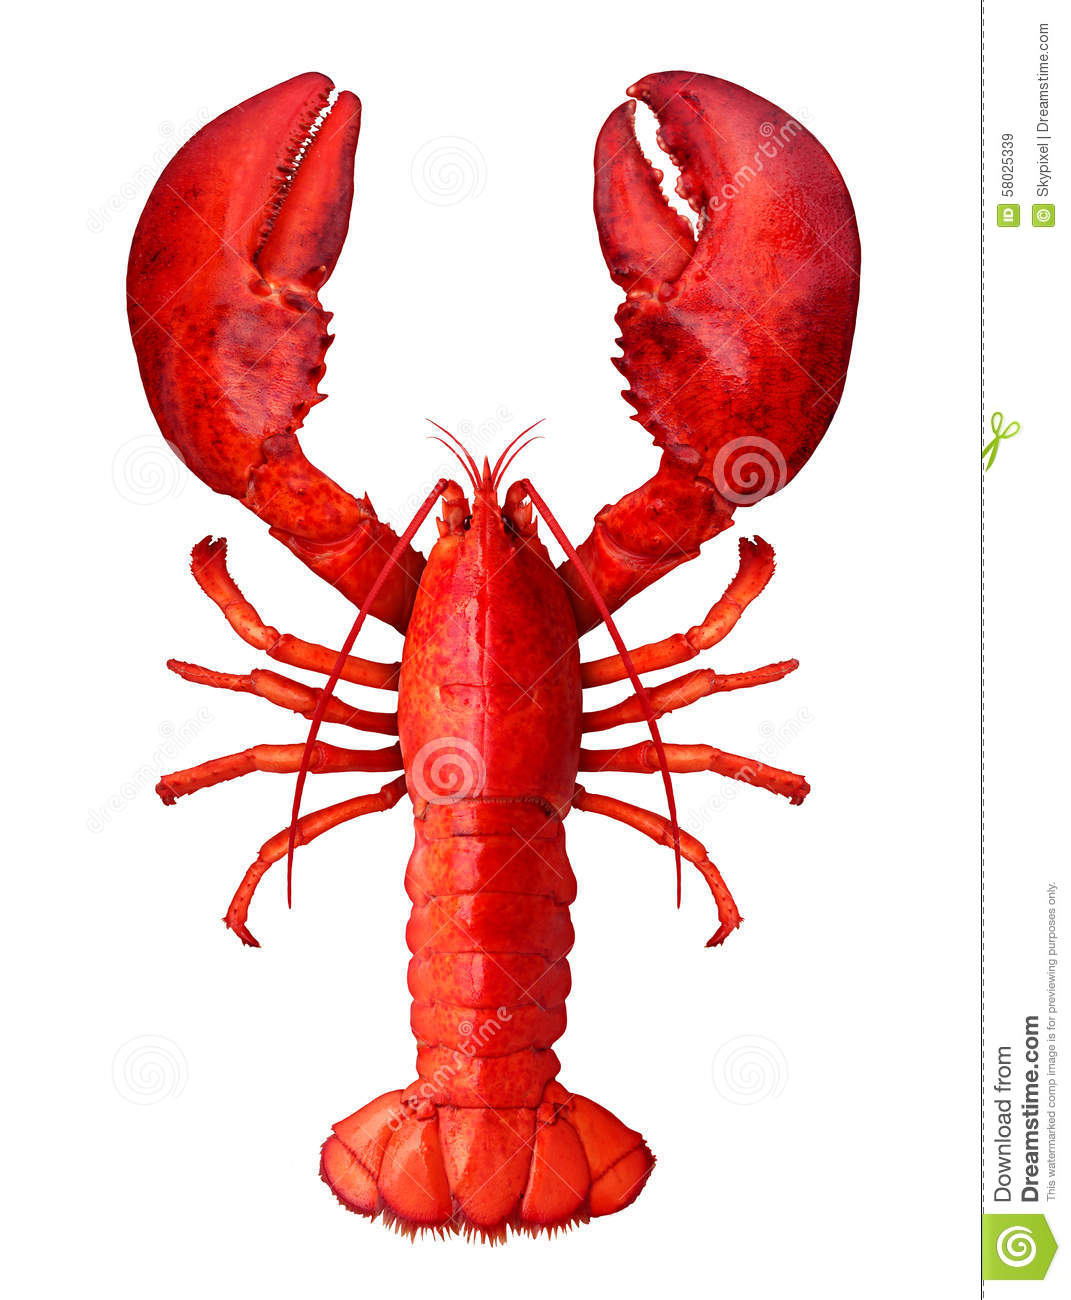 Lobster Stock Illustration - Image: 58025339